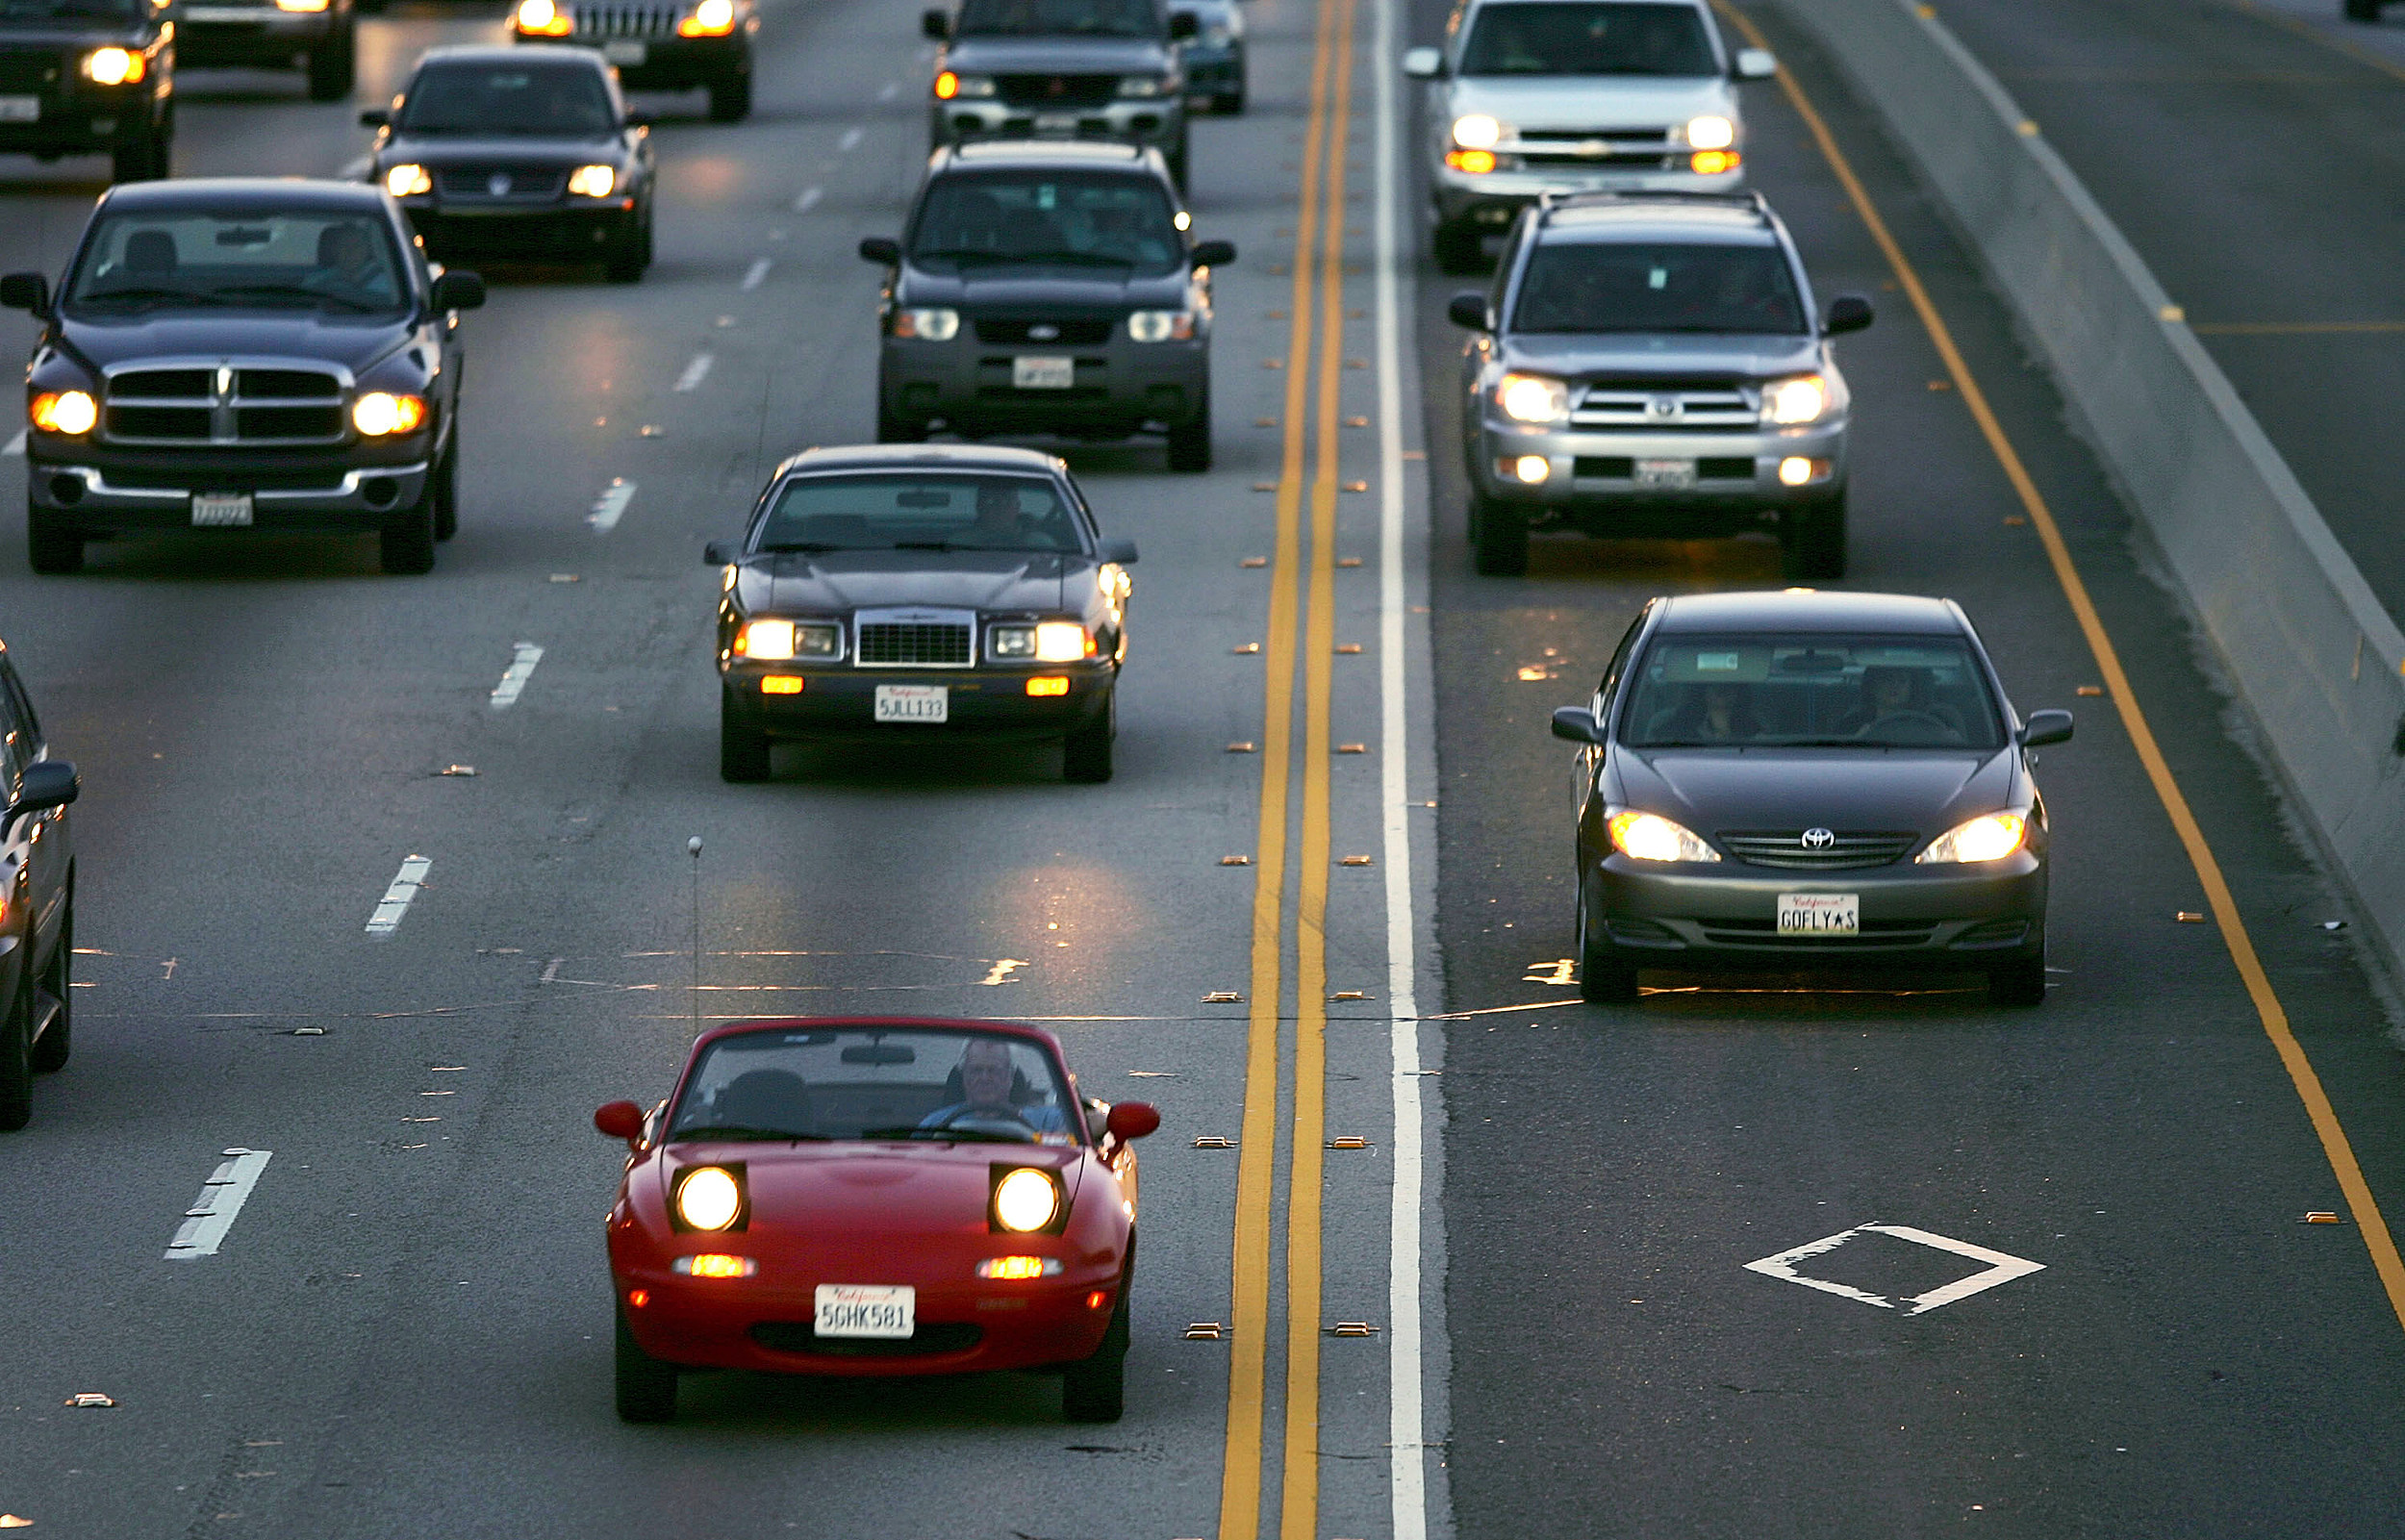 What Does Hov Lane Mean >> What Roads Have Hov Lanes In Nj